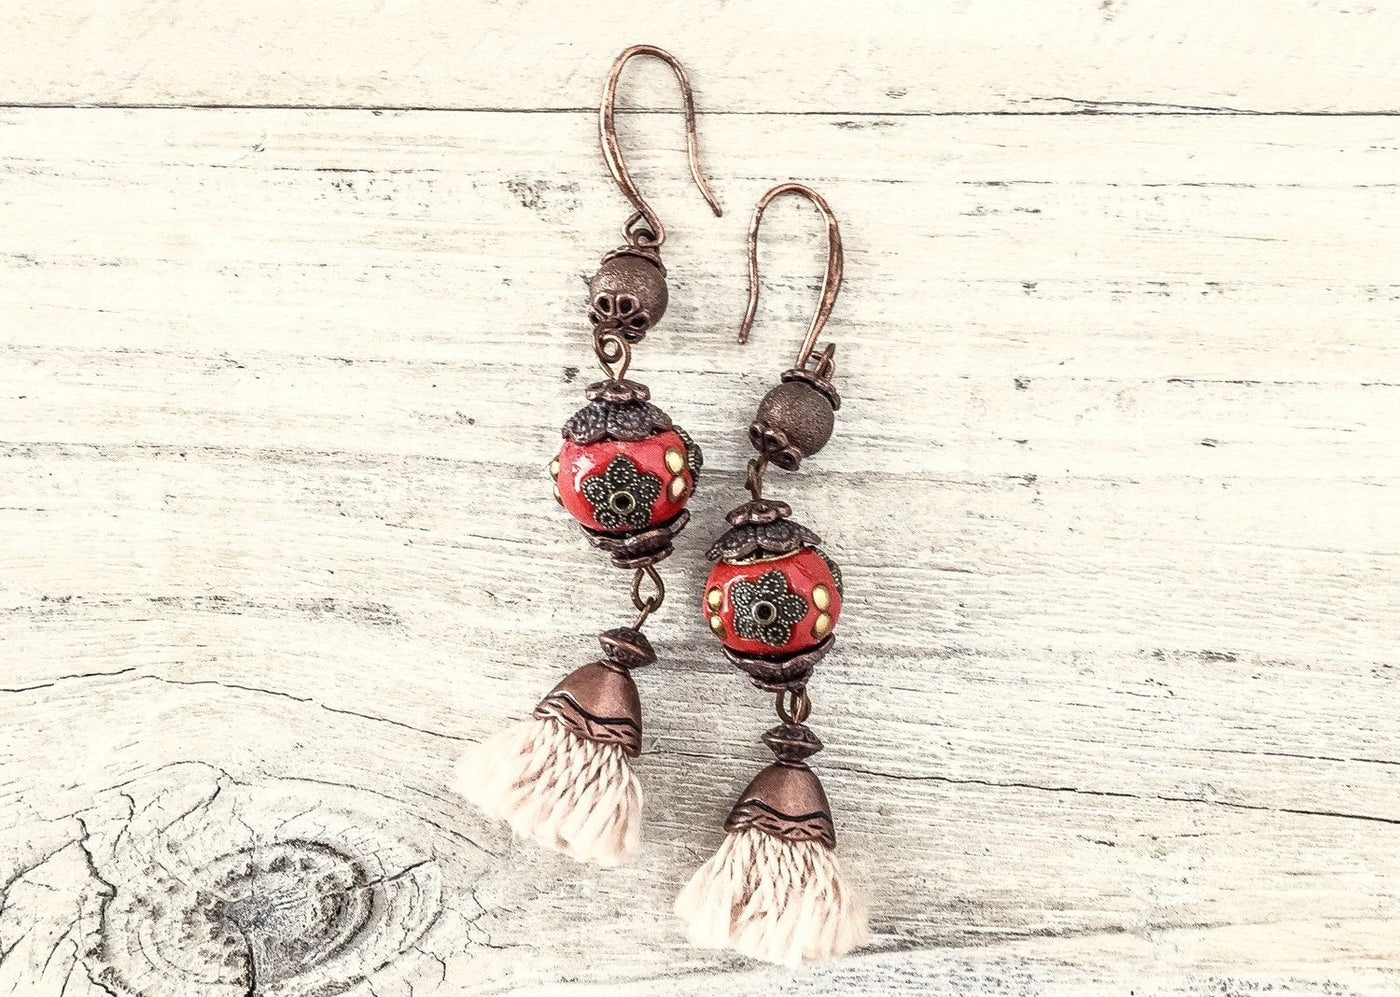 Gypsy Red Tassel Earrings, Red Earrings, Flower Gypsy Earrings, Bohemian Earrings, Red Clay Earrings, Boho Earrings, E030